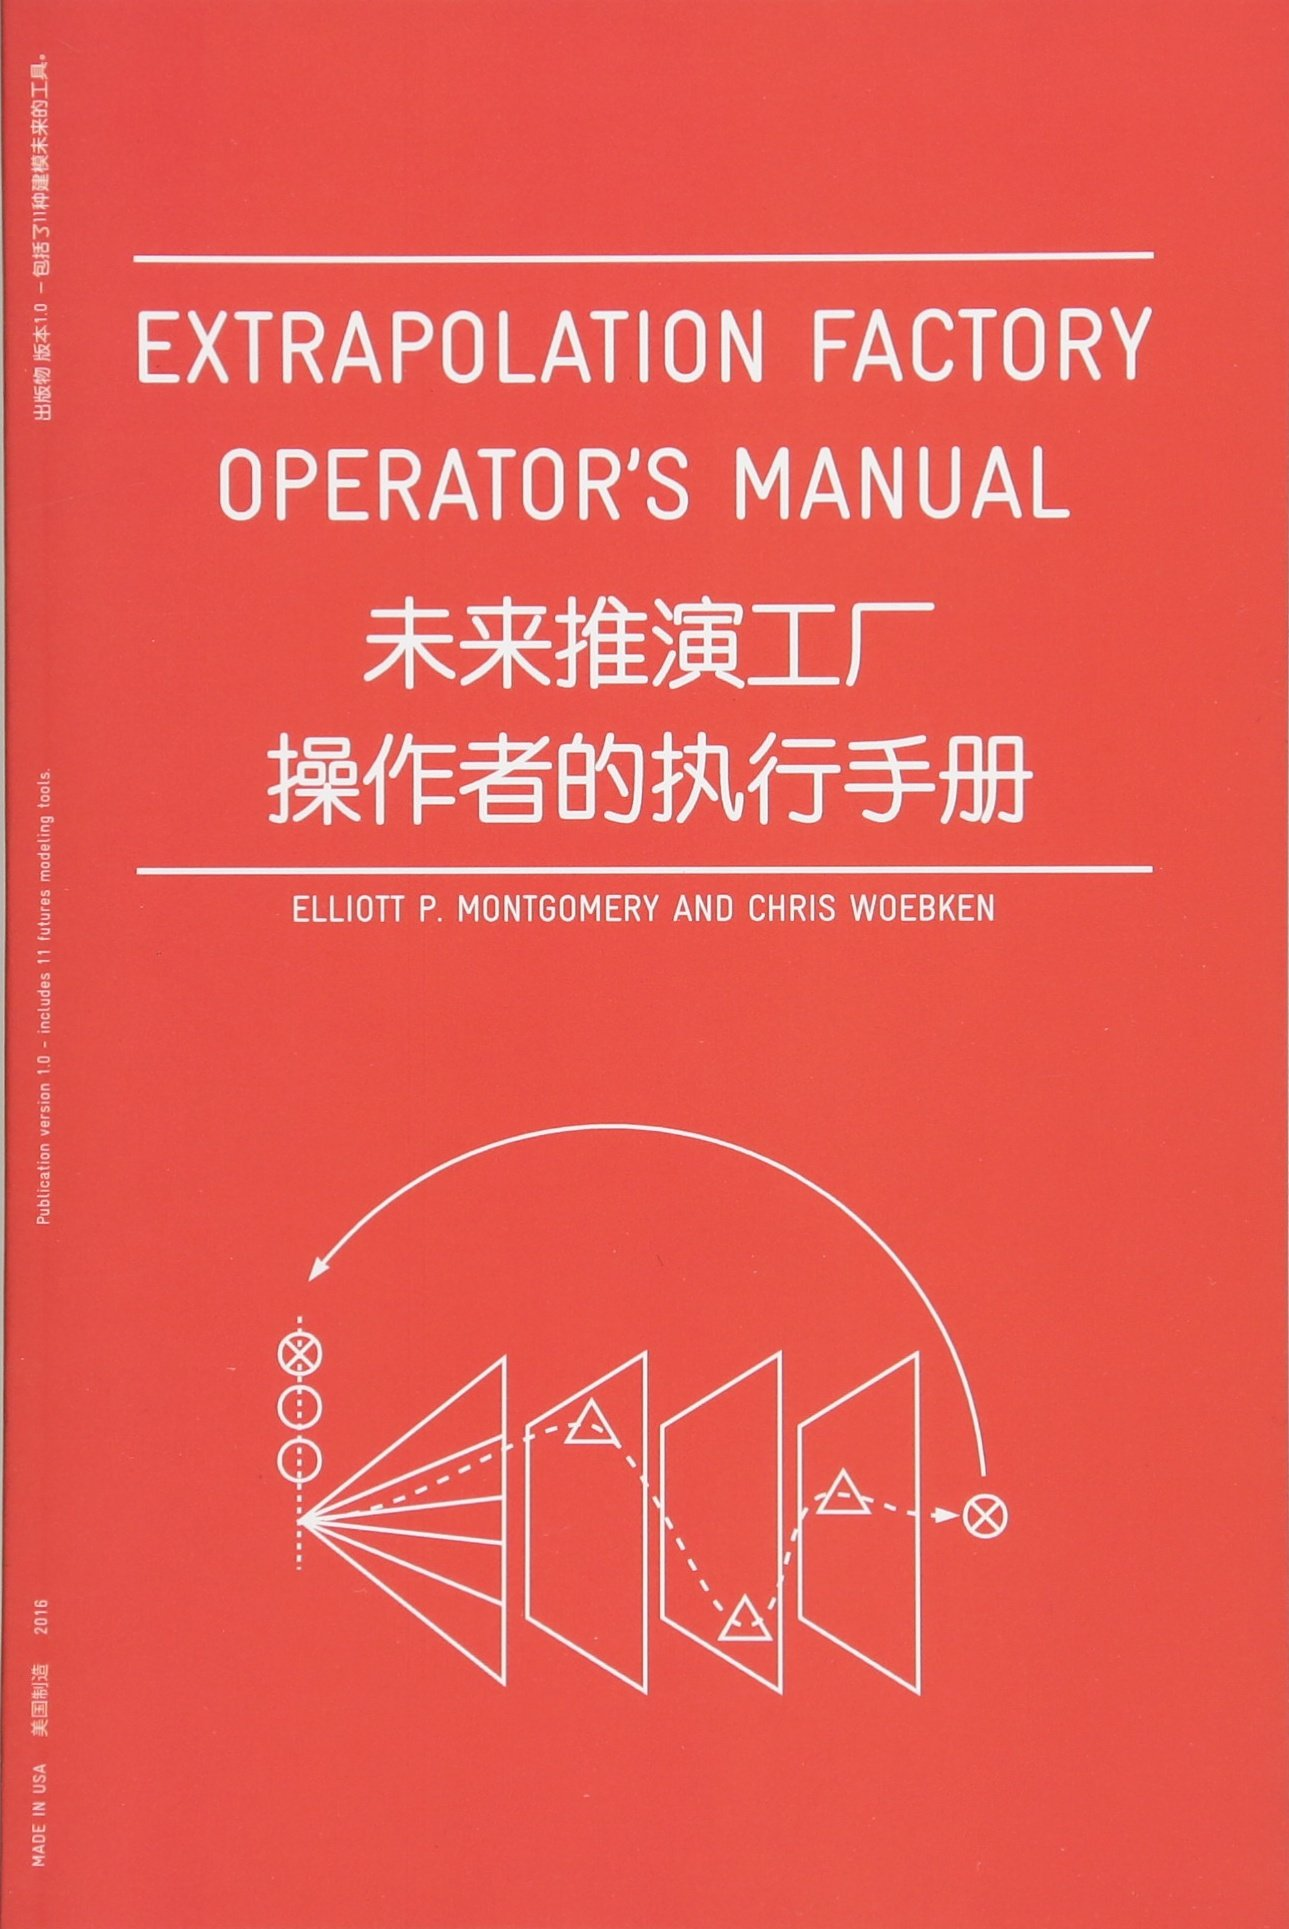 Extrapolation Factory   Operator's Manual  Publication Version 1.0   Includes 11 Futures Modeling Tools